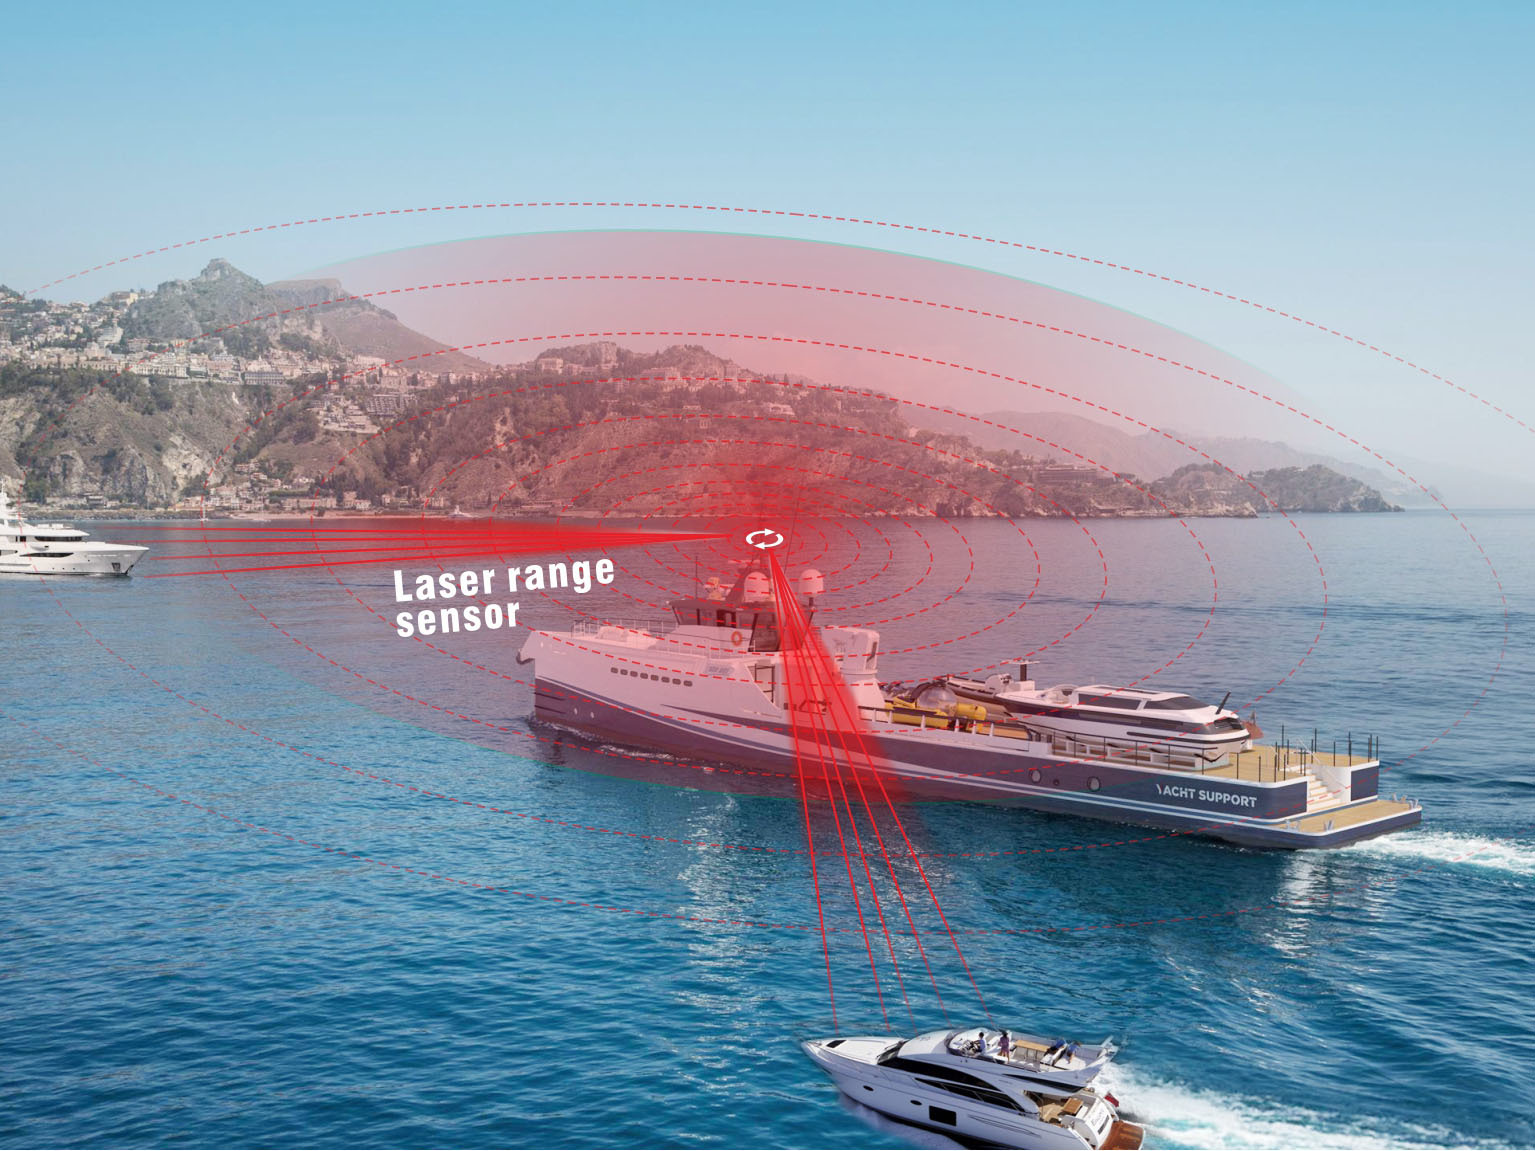 Ship navigation and landing safety and security